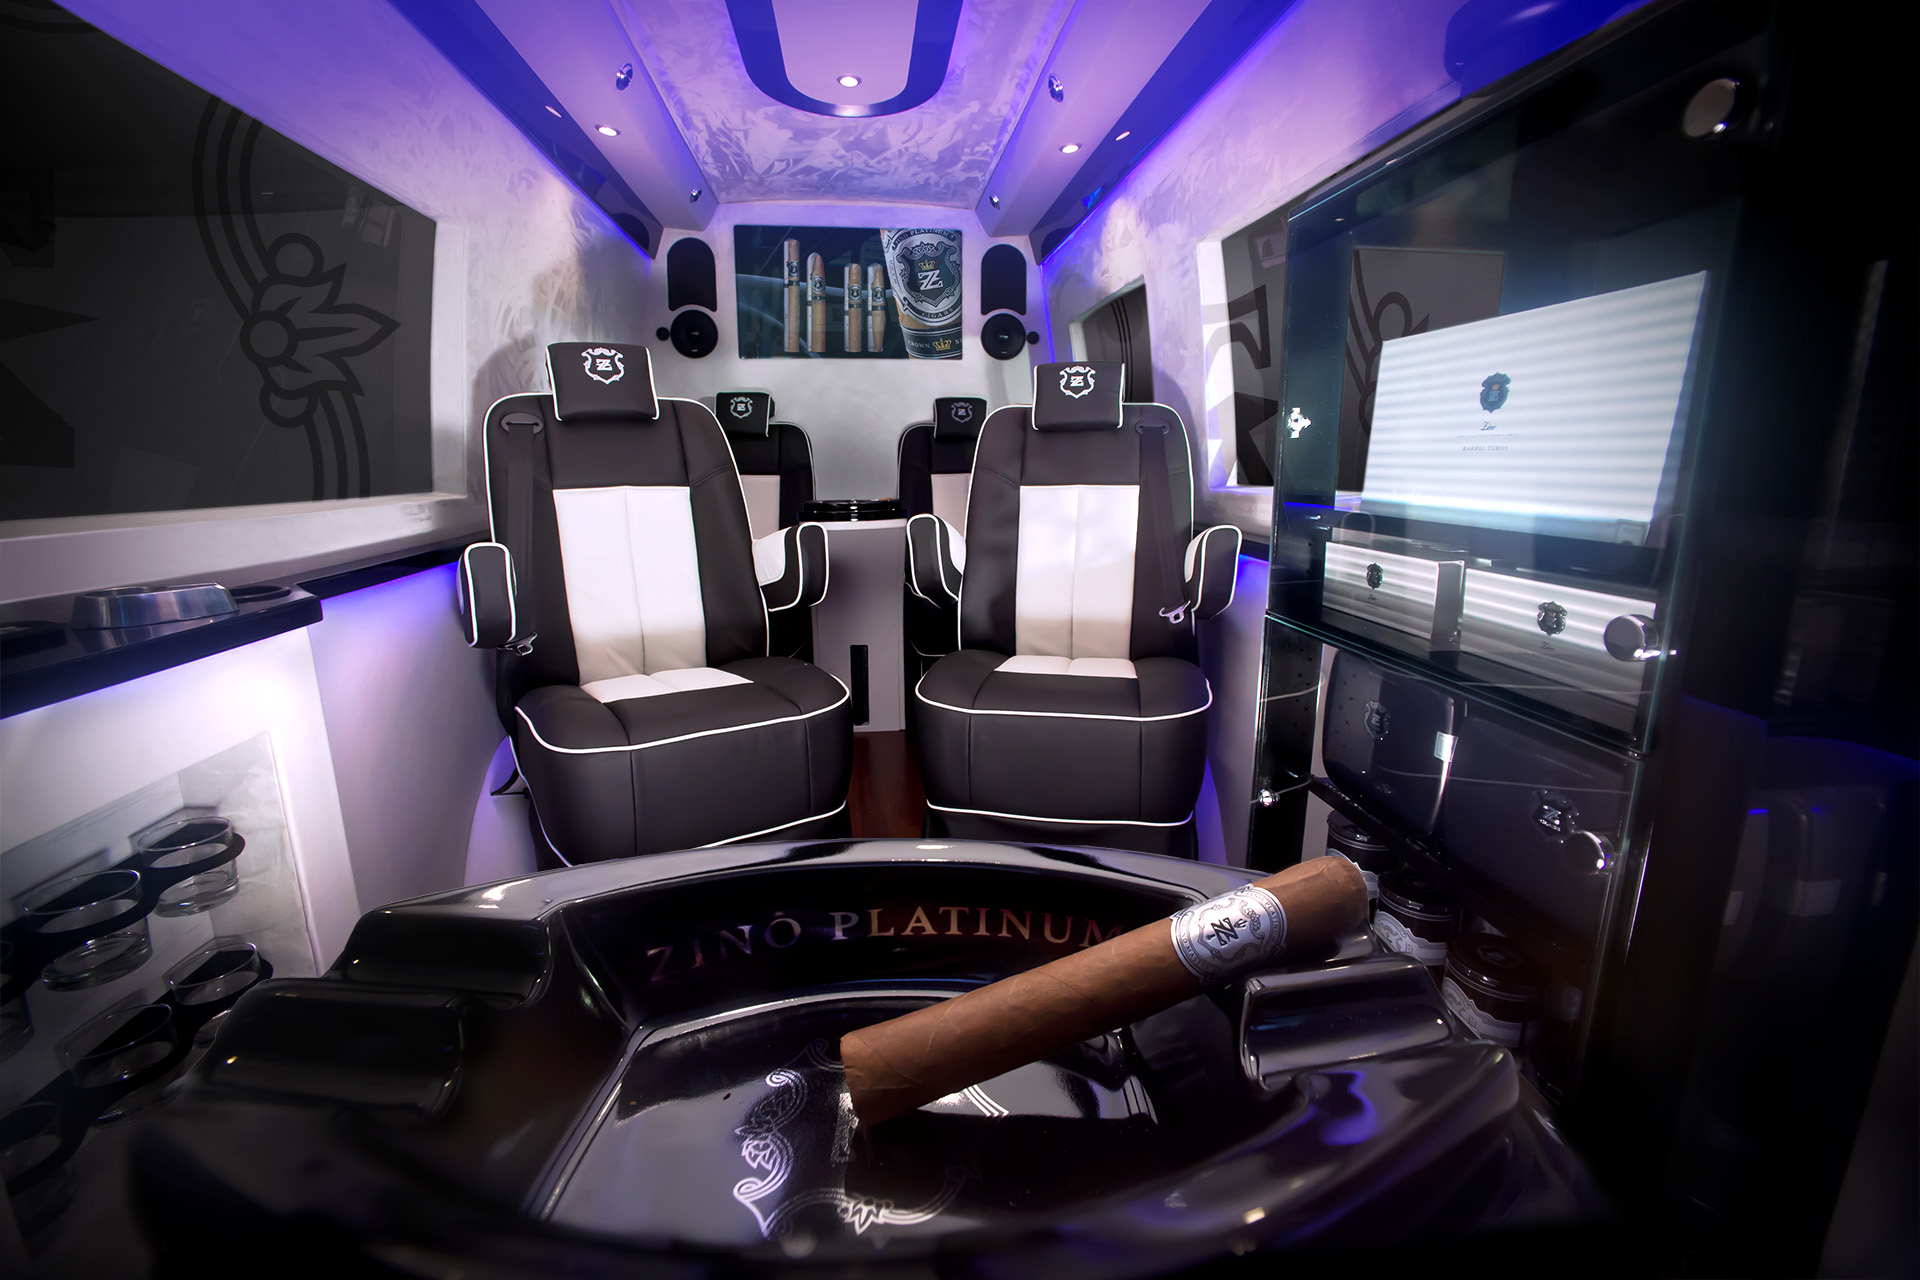 Zino Mobile Luxury Lounge Goes On Tour Fine Tobacco NYC